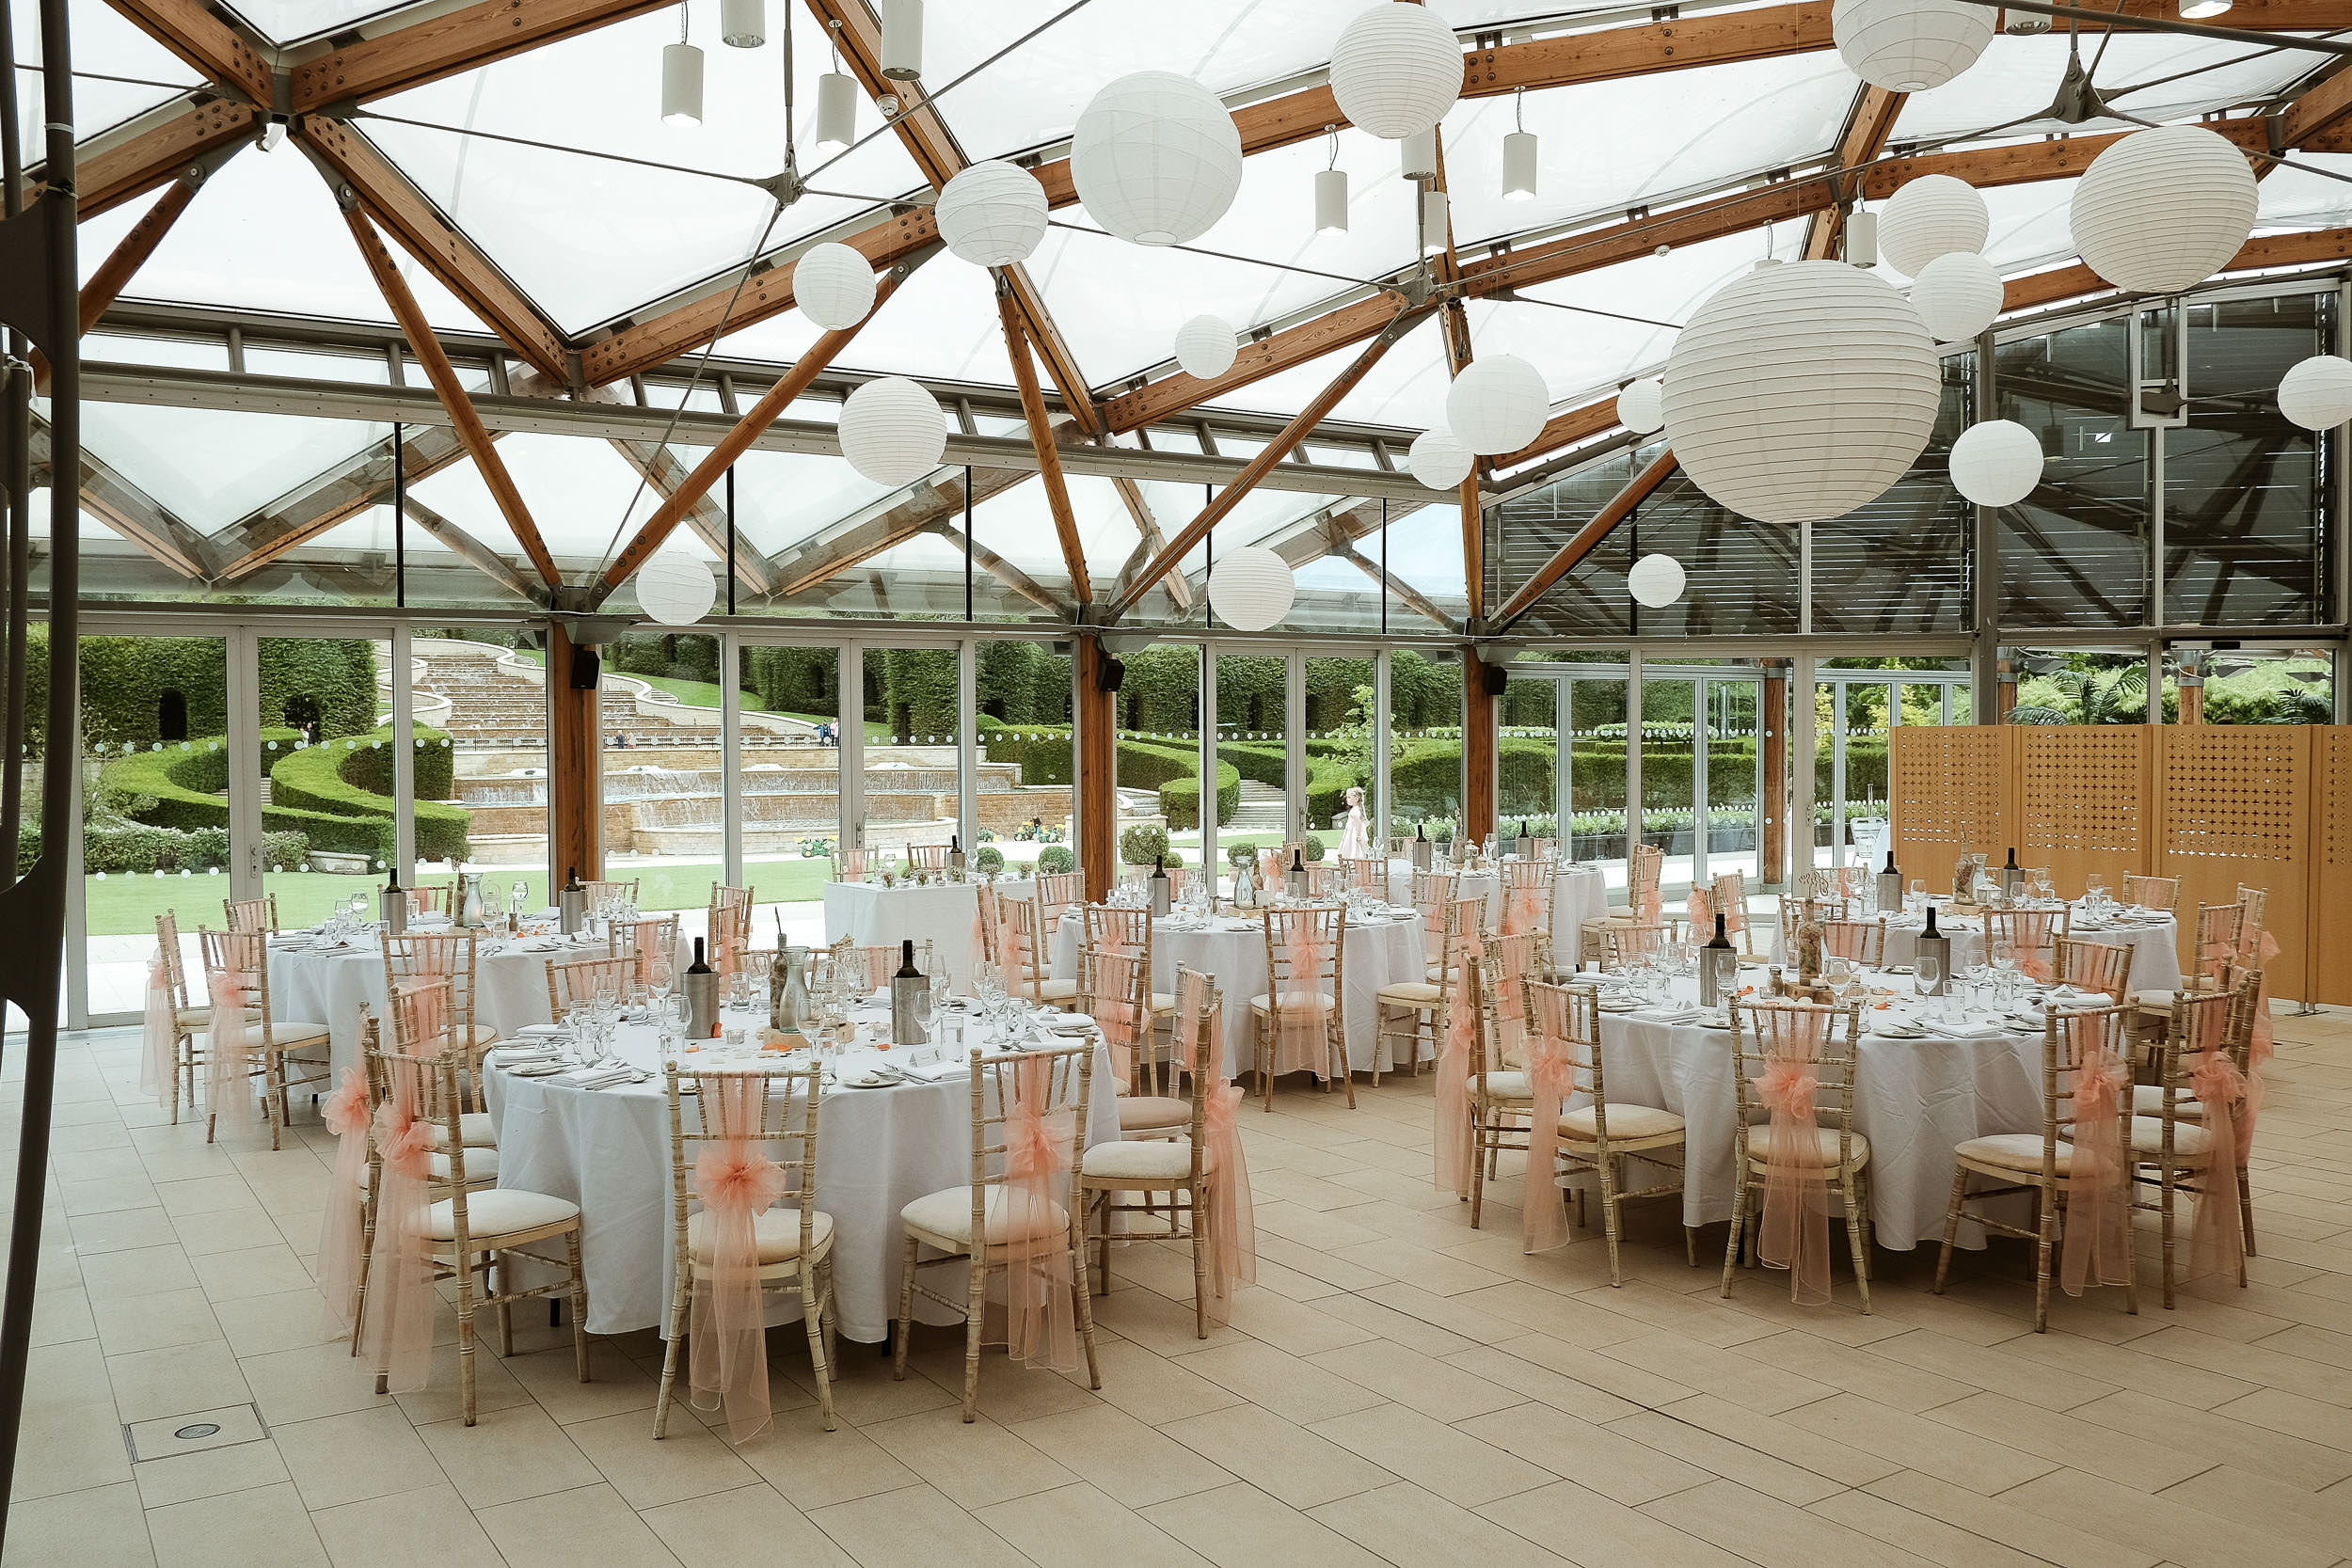 The Alnwick Garden pavilion set up for wedding reception